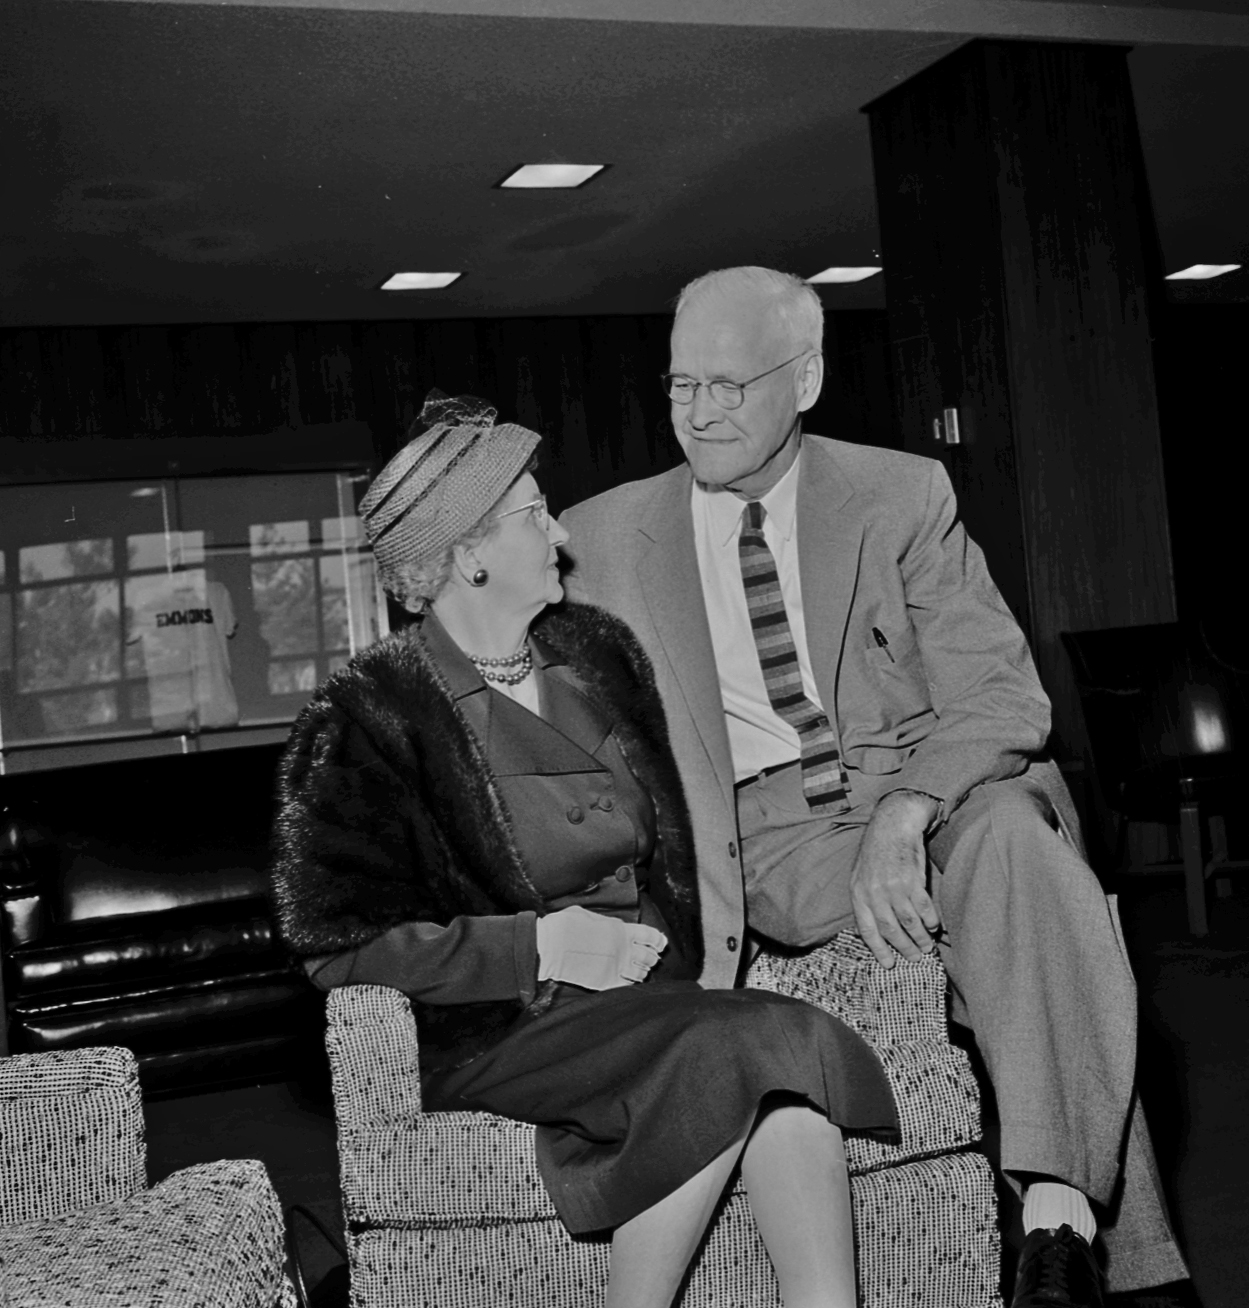 Dean Emmons and his wife at Emmons Hall, 1956